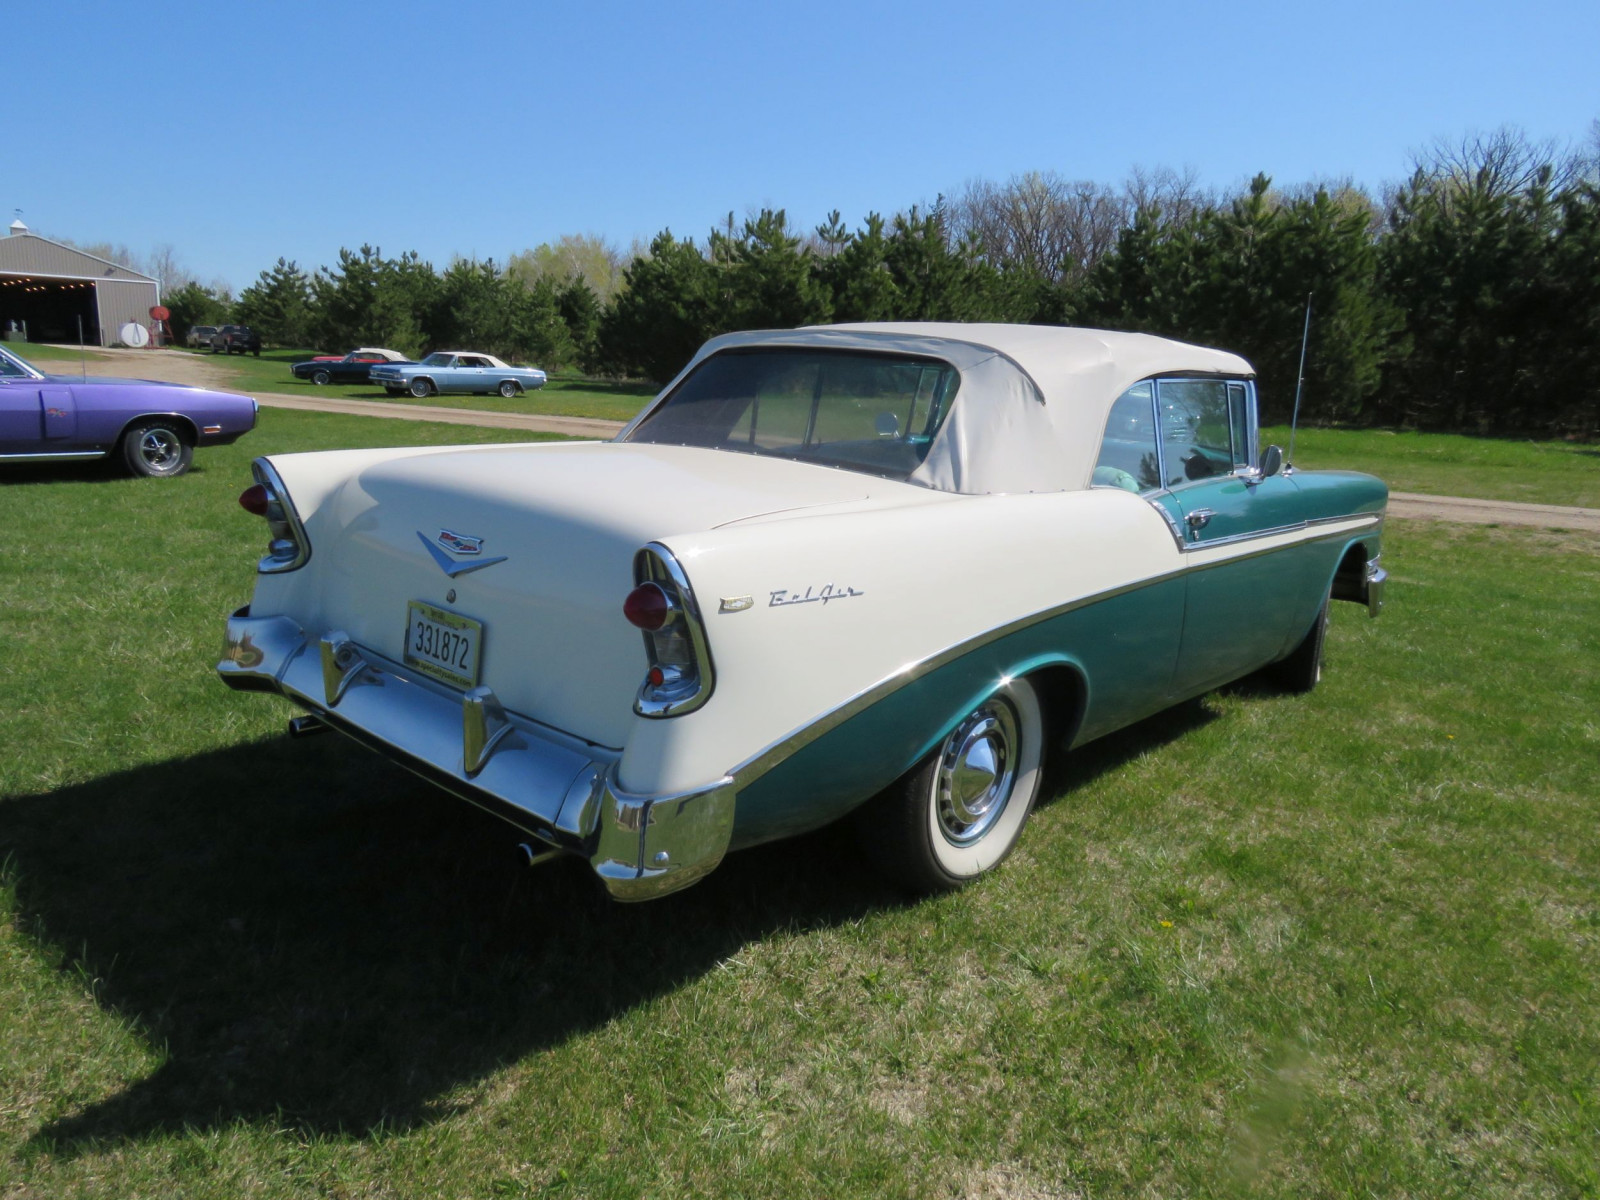 1956 Chevrolet Bel Air Convertible - Image 7